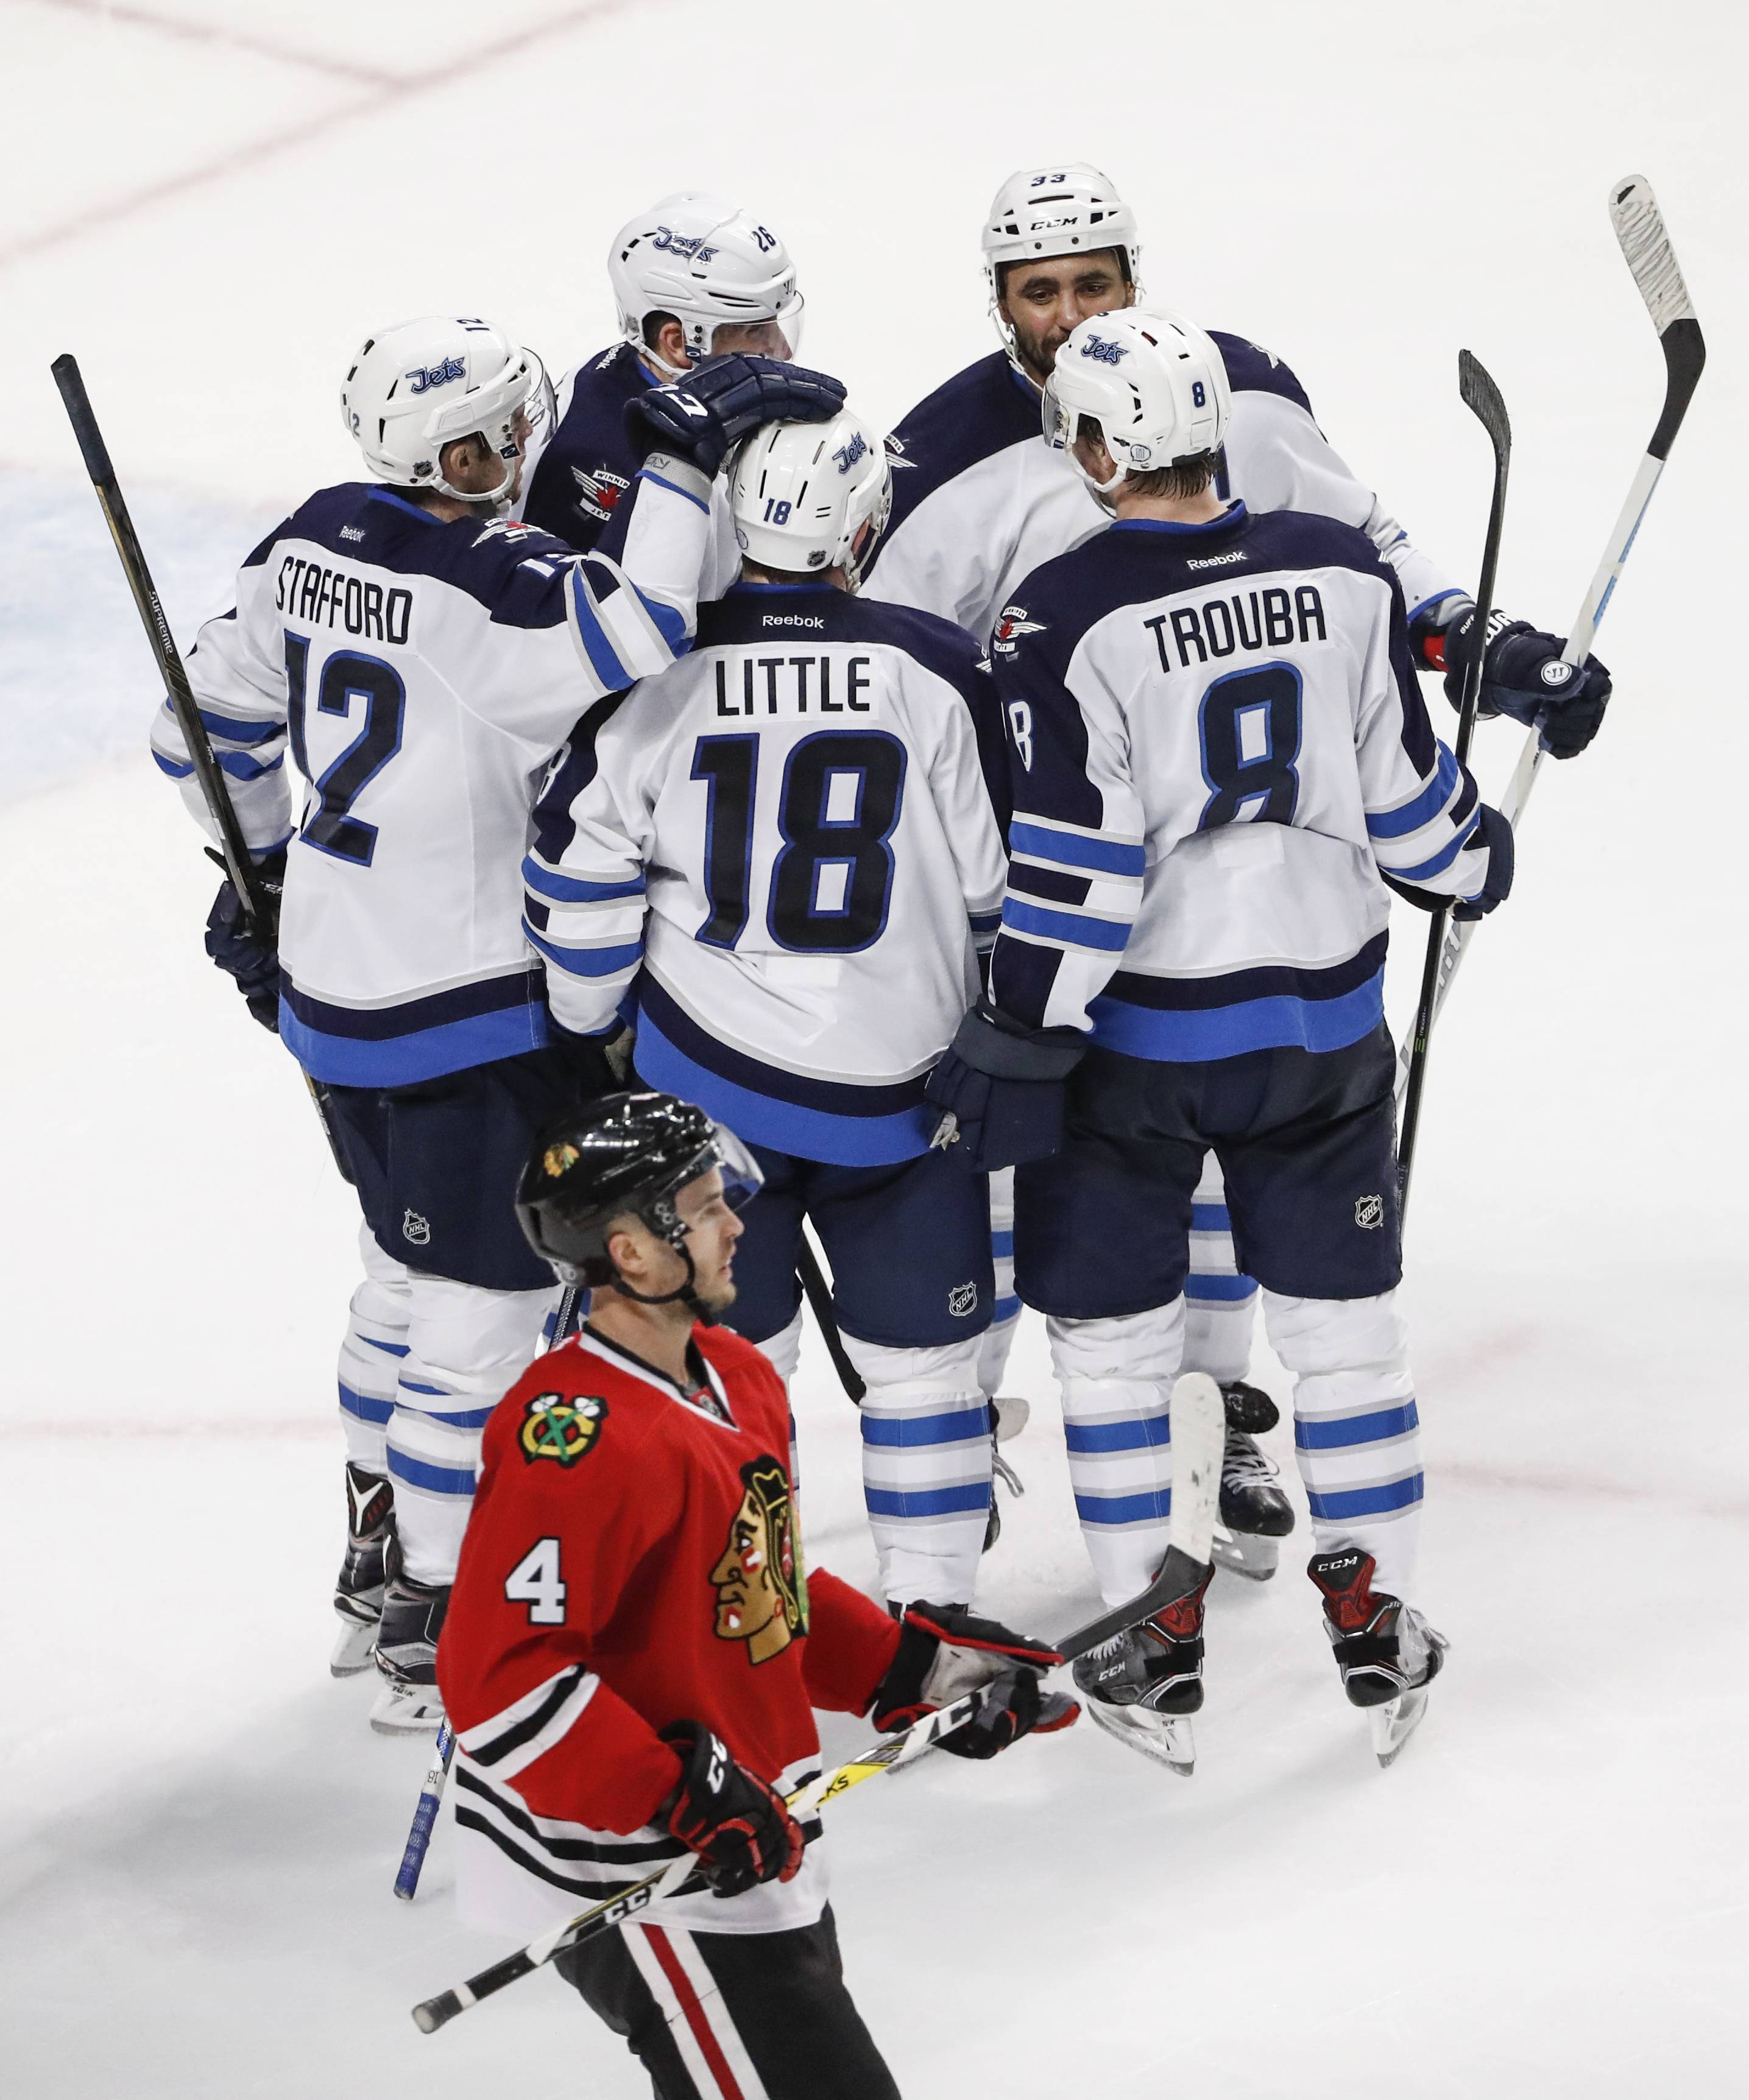 Winnipeg Jets center Bryan Little (18) celebrates with teammates after scoring against the Chicago Blackhawks during the second period of an NHL hockey game, Sunday, Dec. 4, 2016, in Chicago.